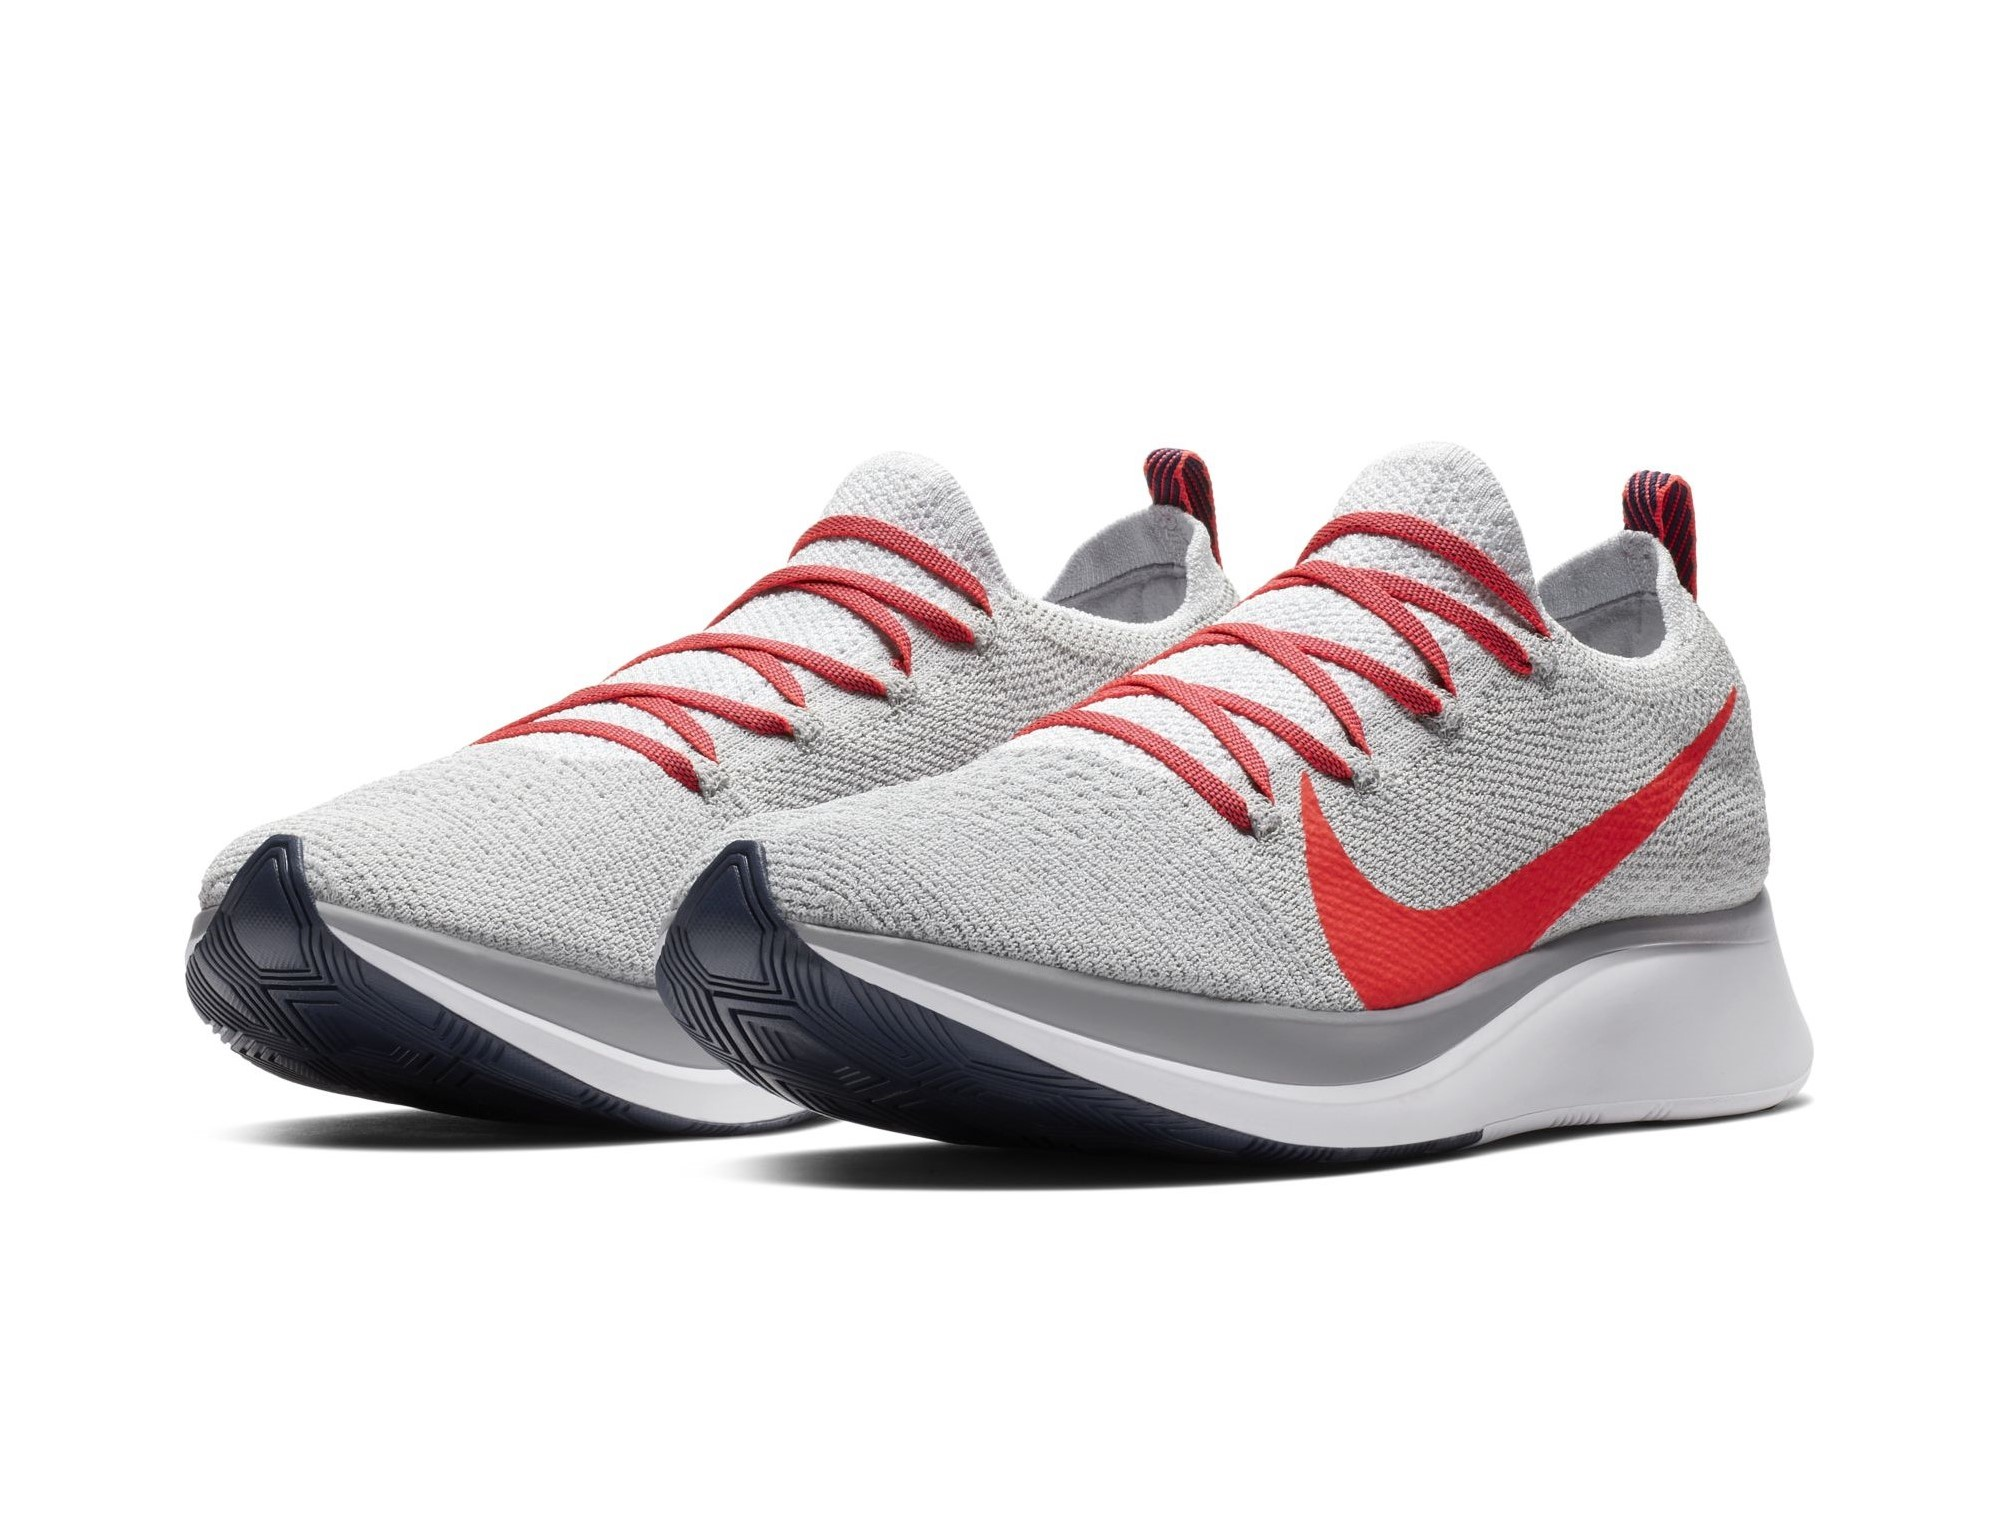 693dfd587771 Here s What Nike Has Planned for the Zoom Fly Flyknit - WearTesters